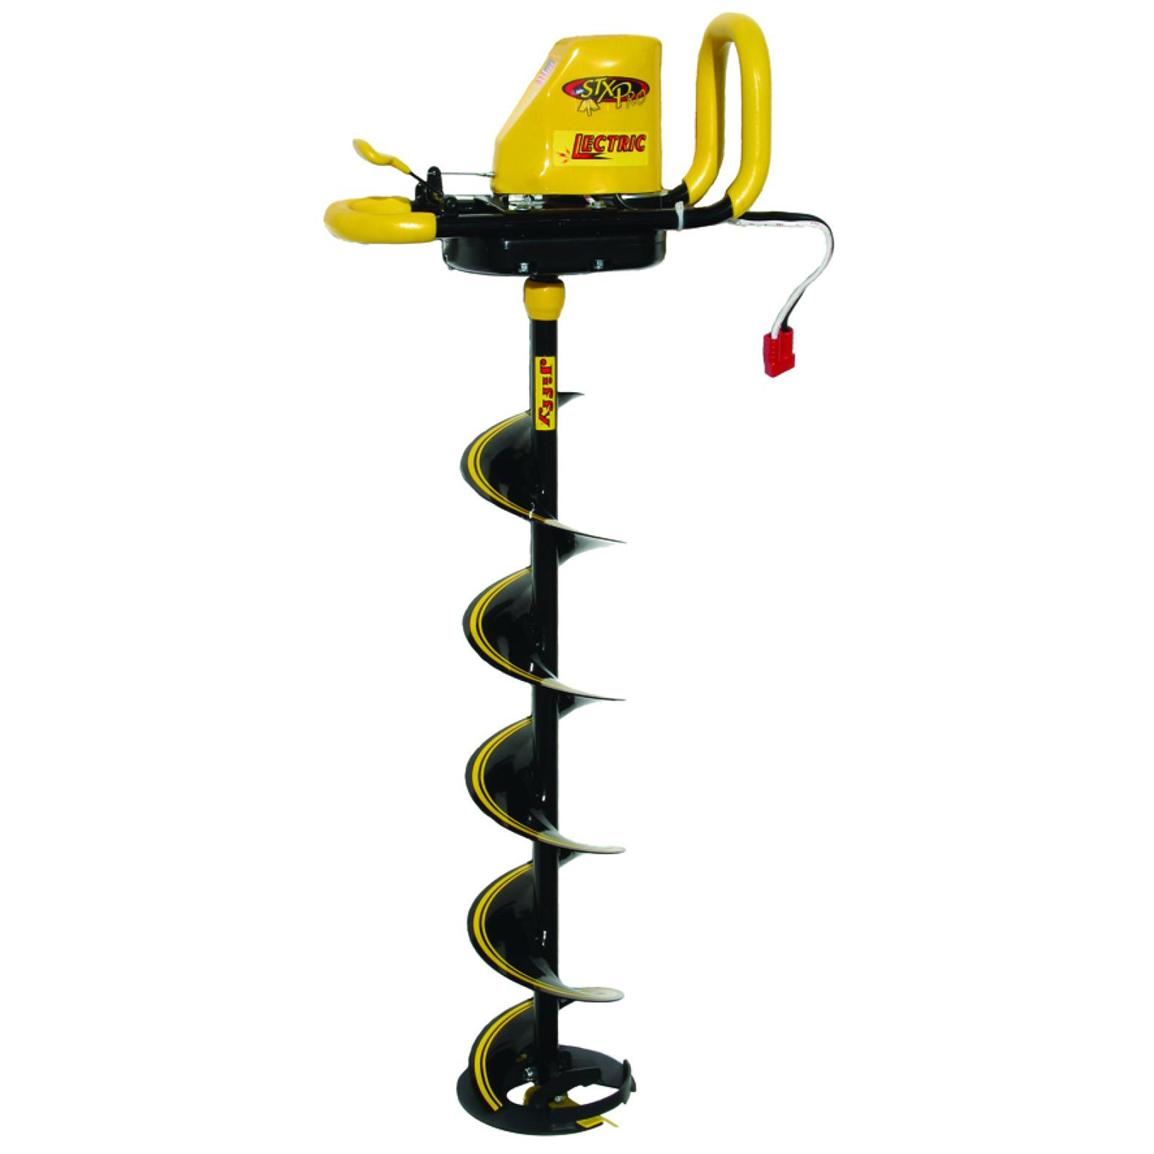 Jiffy STX PRO LECTRIC Auger dtype=